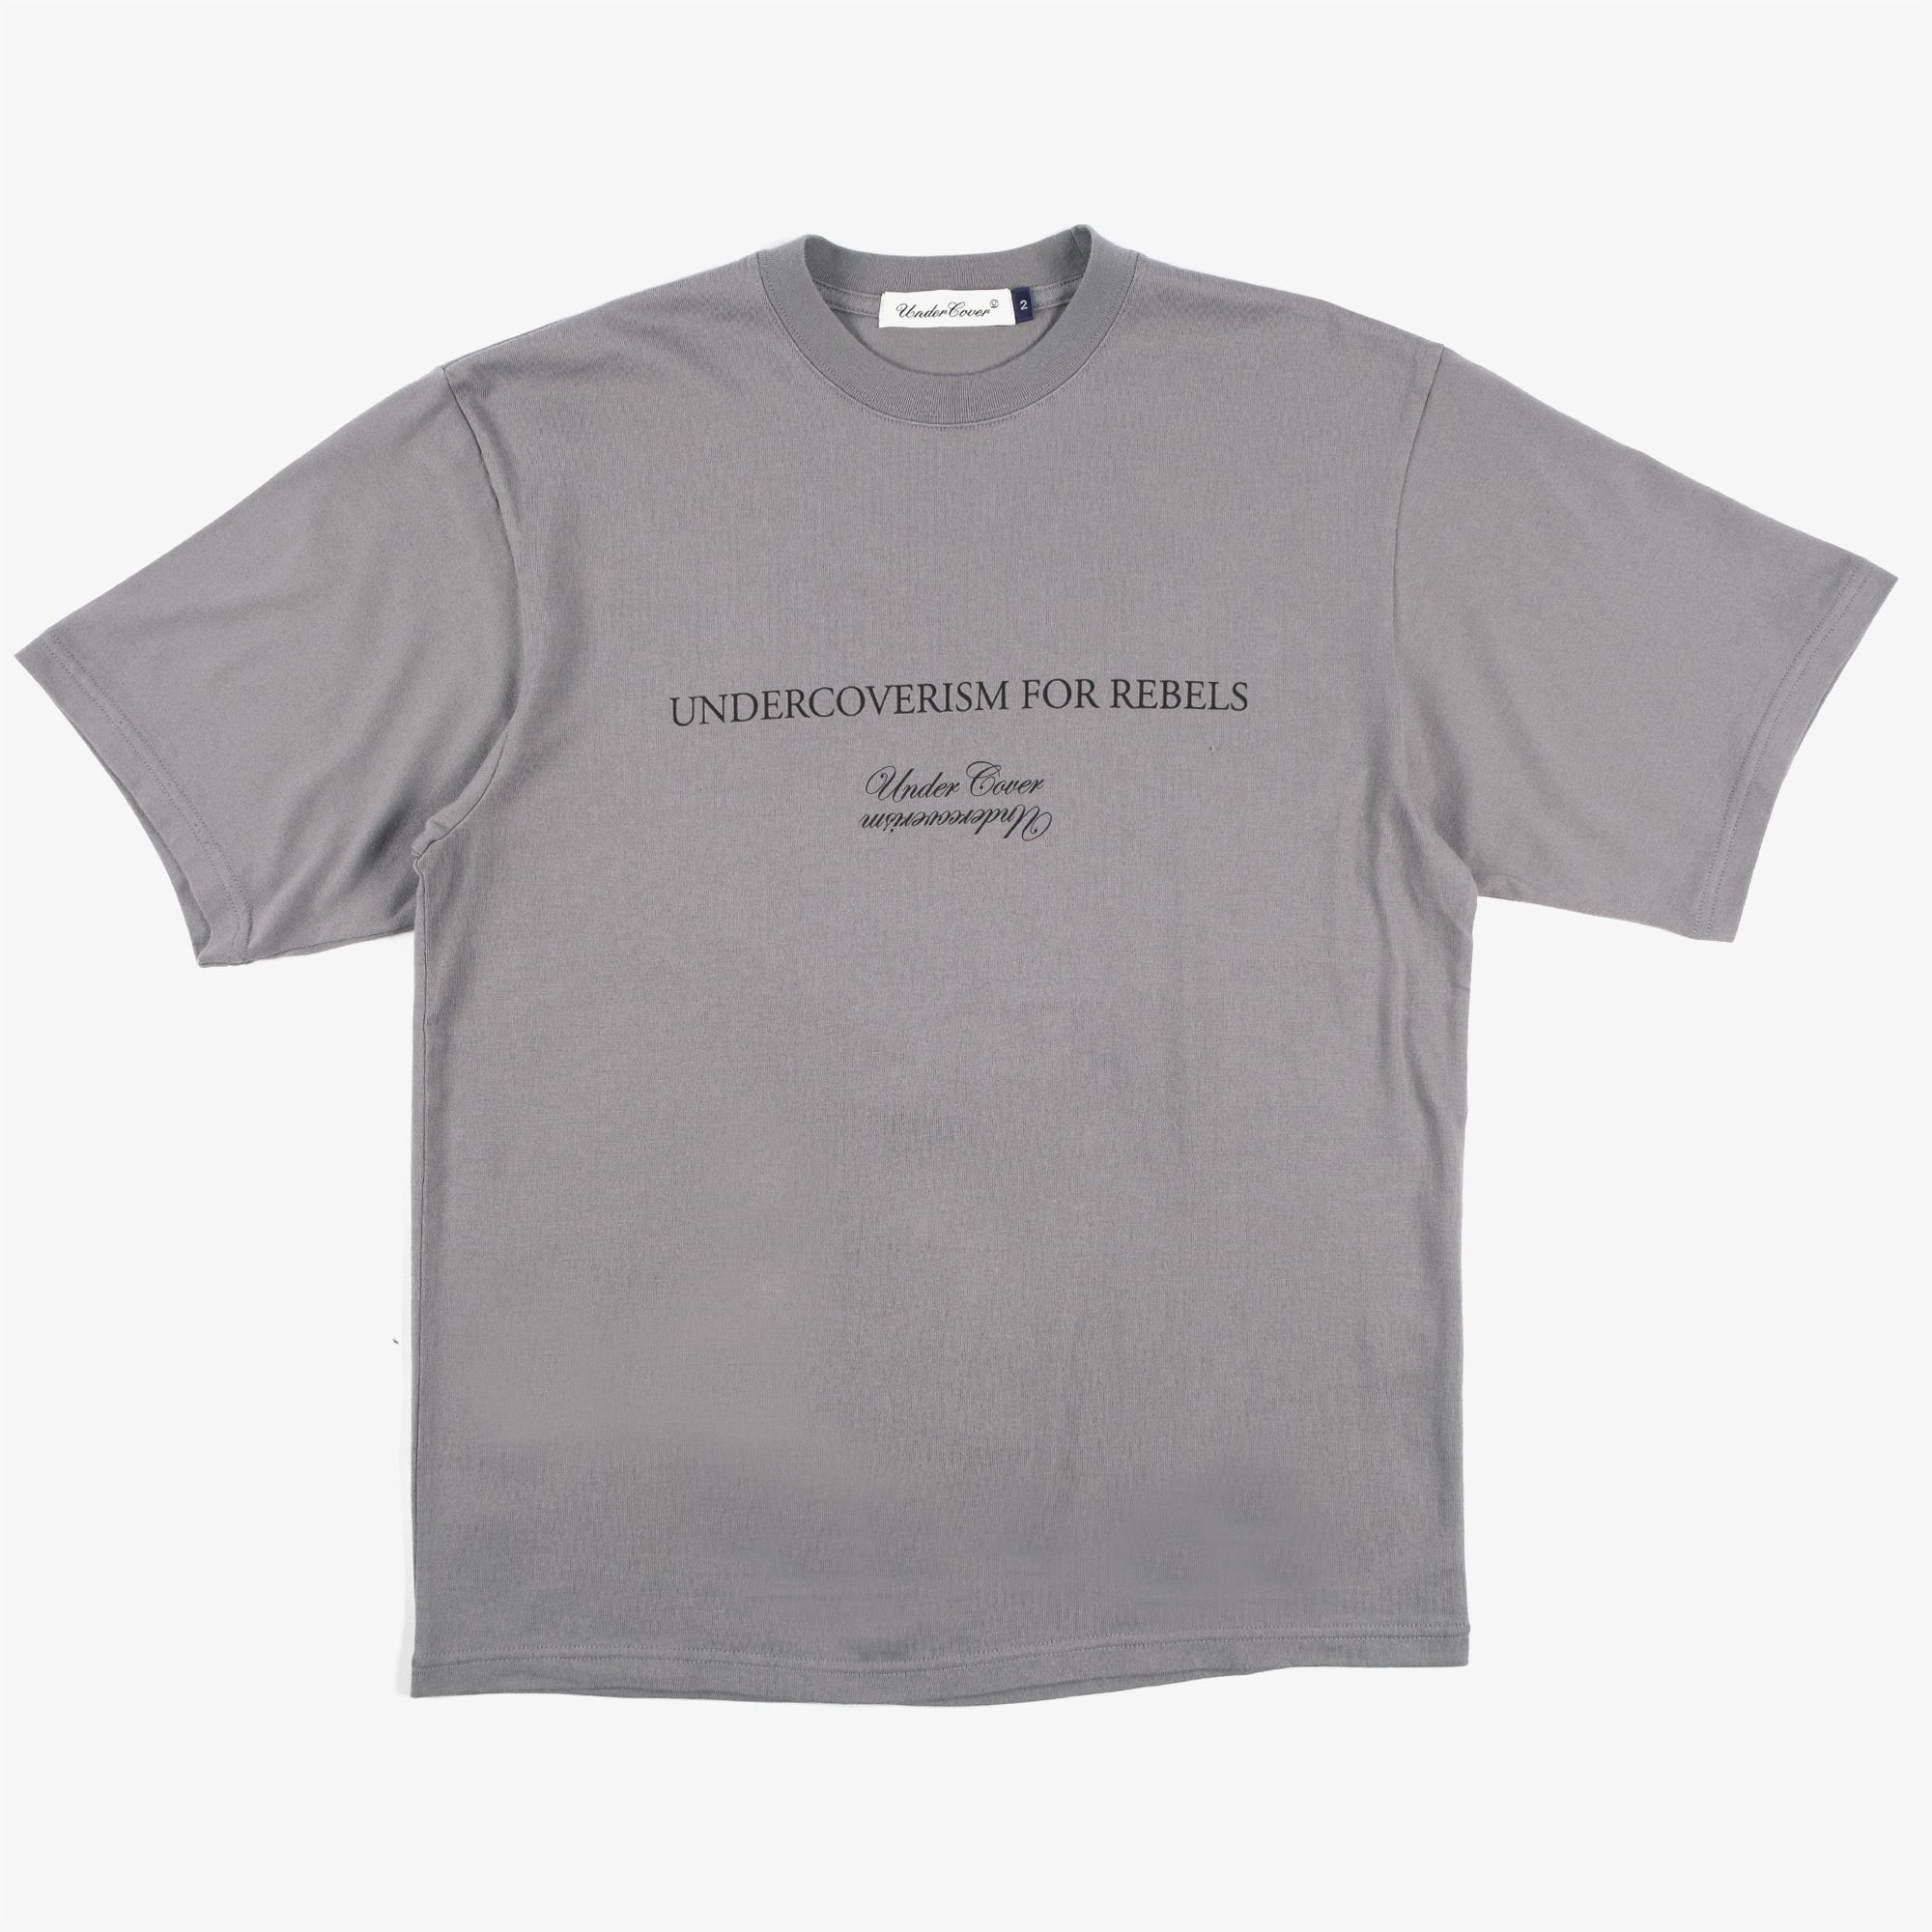 Undercover Blindfold Tee UC2A3807 - Blue Gray 1